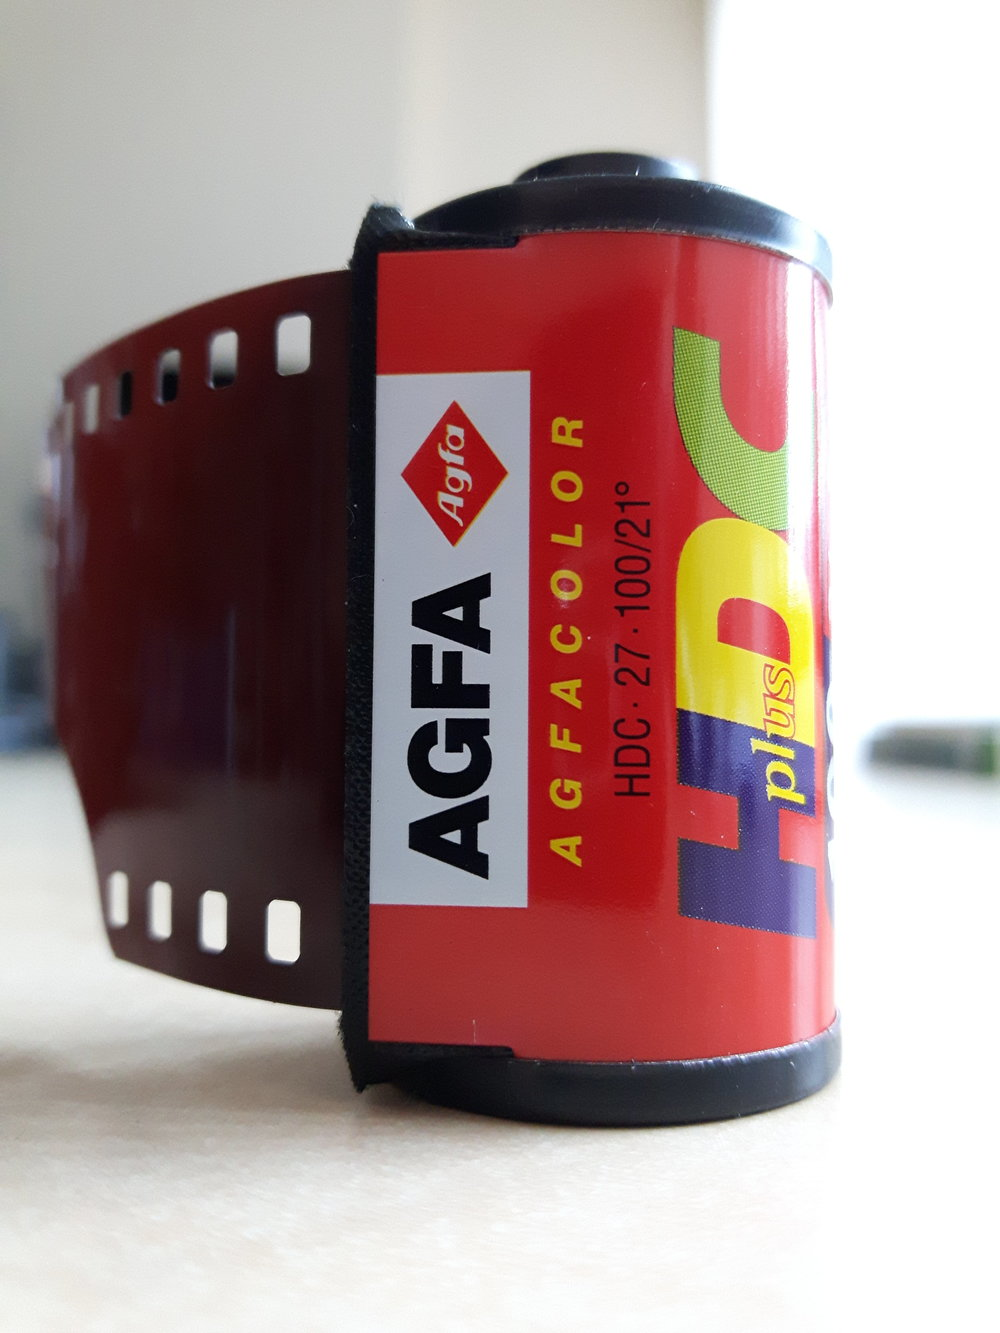 Agfa HDC Plus - the roll of film that Mia sent to me, all the way from Santa Cruz, California.